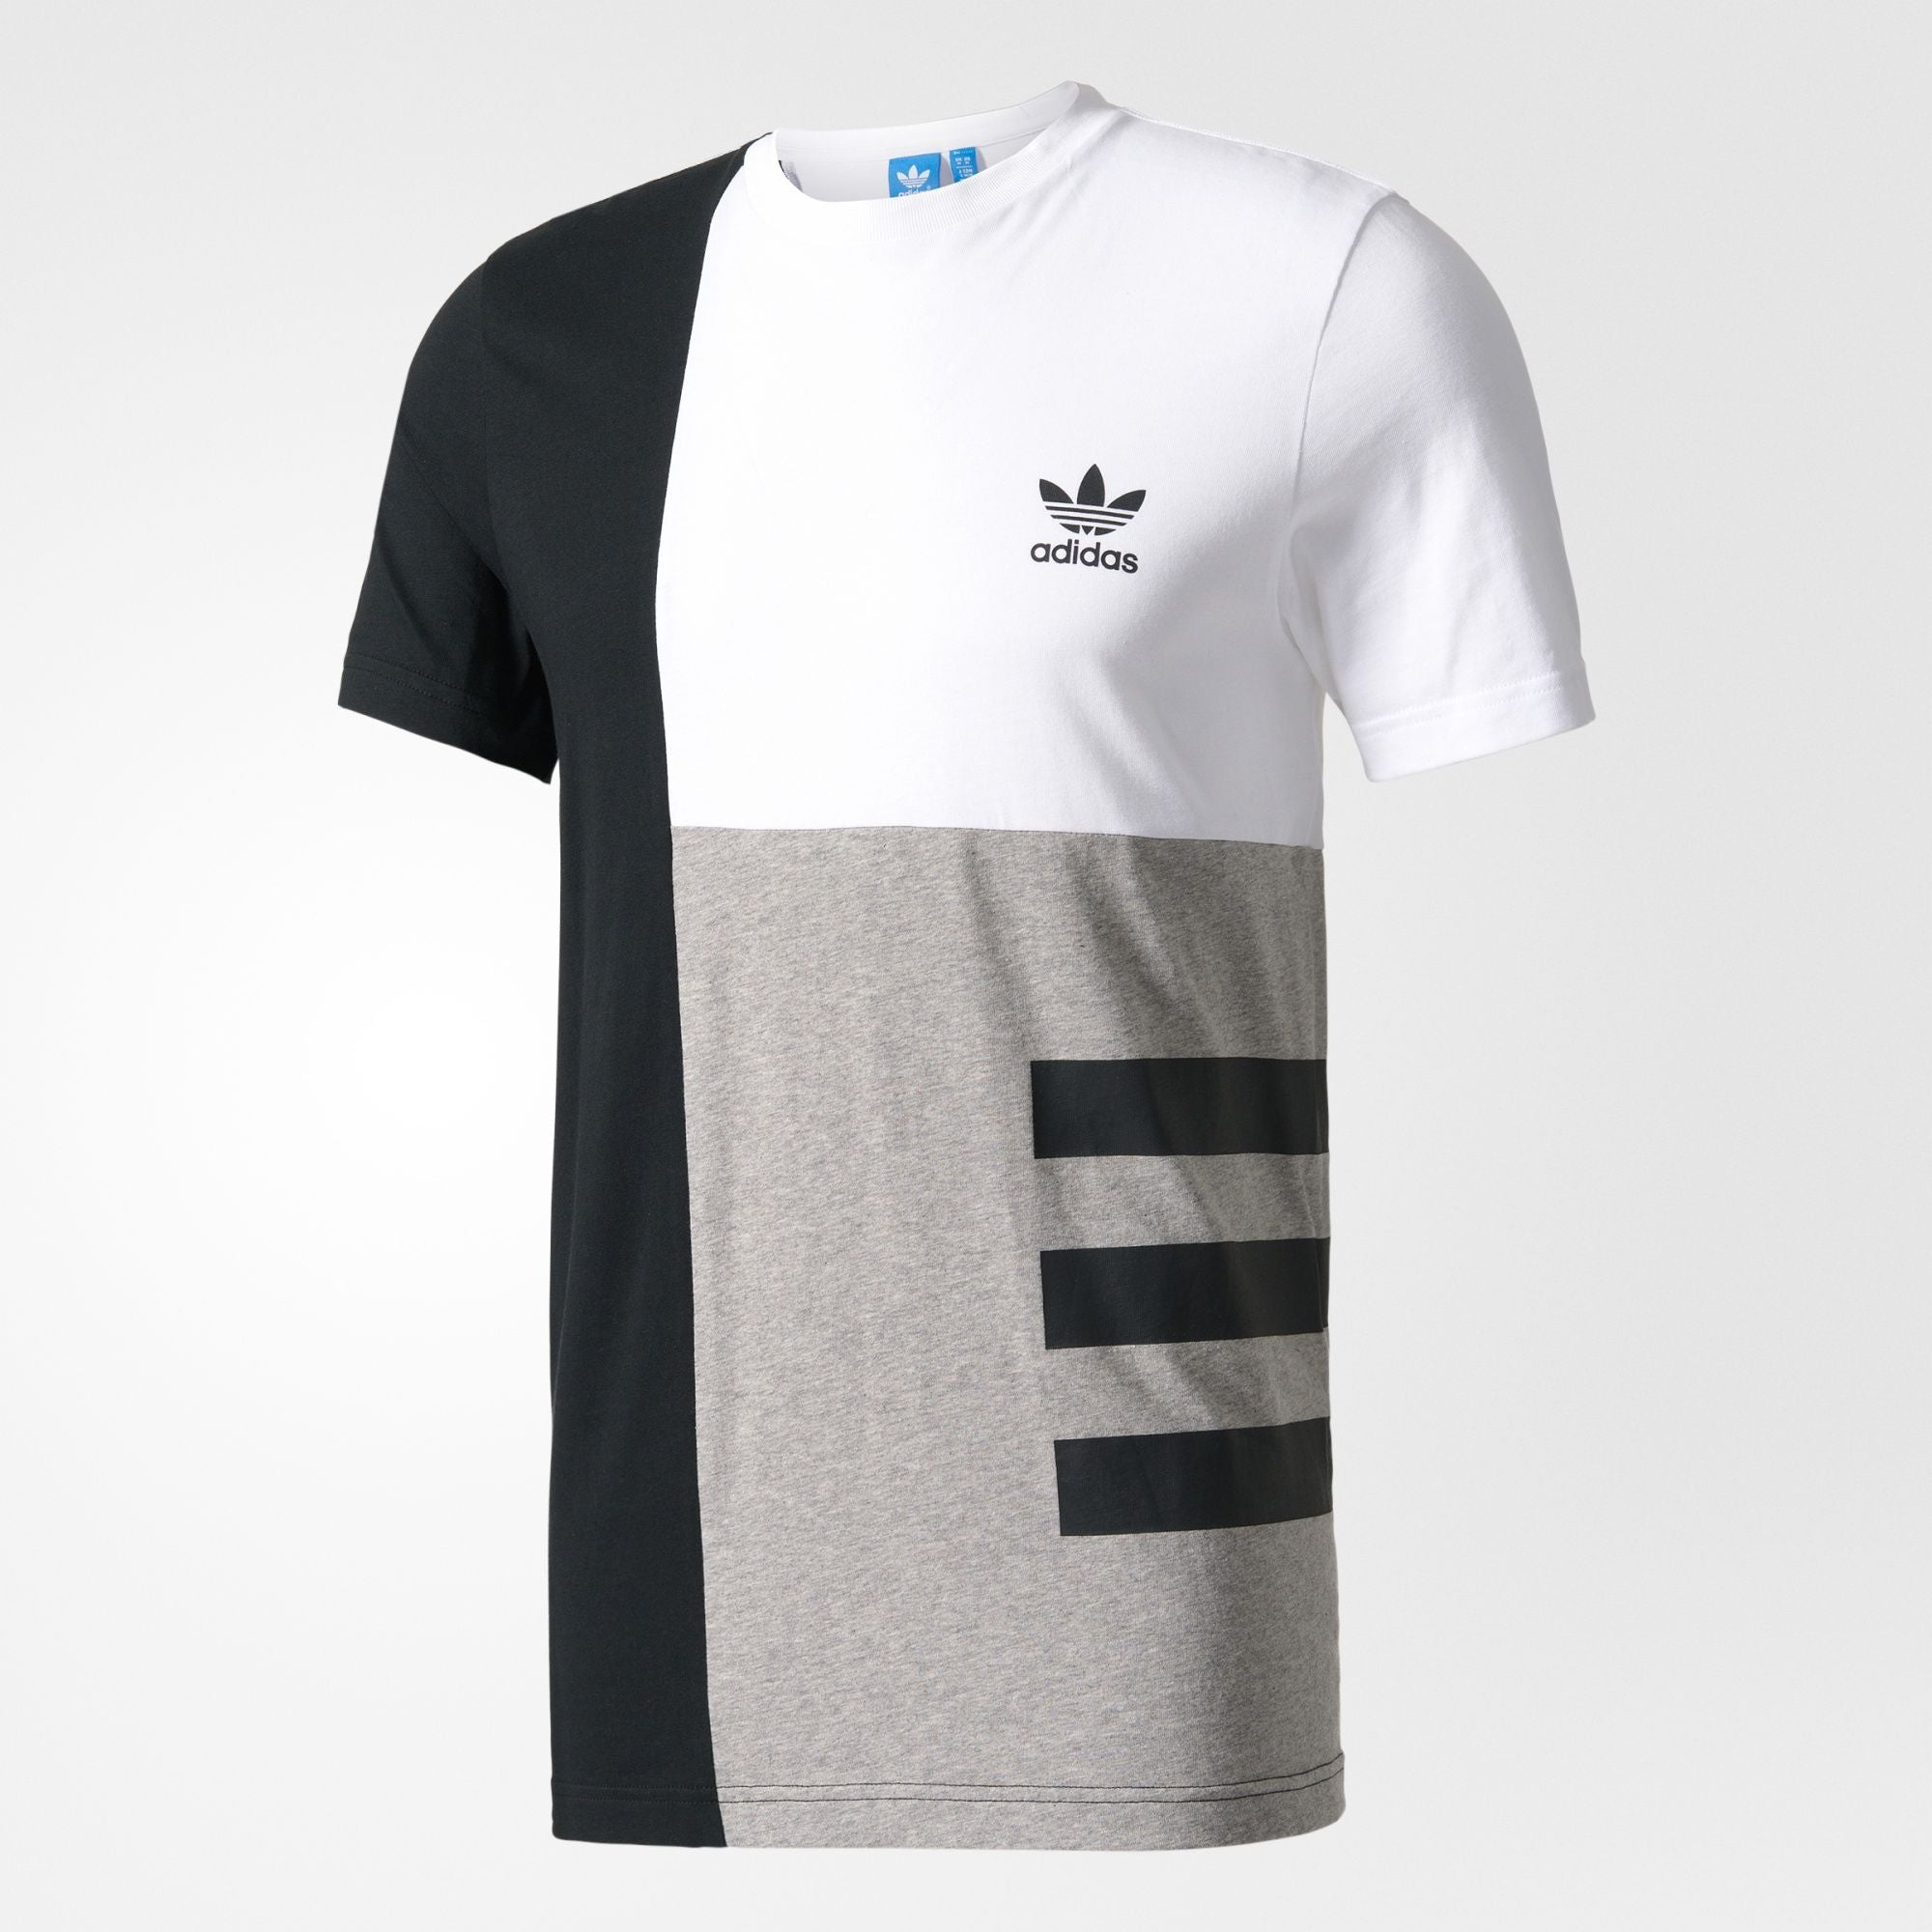 Adidas Originals BQ3046 T-Shirt